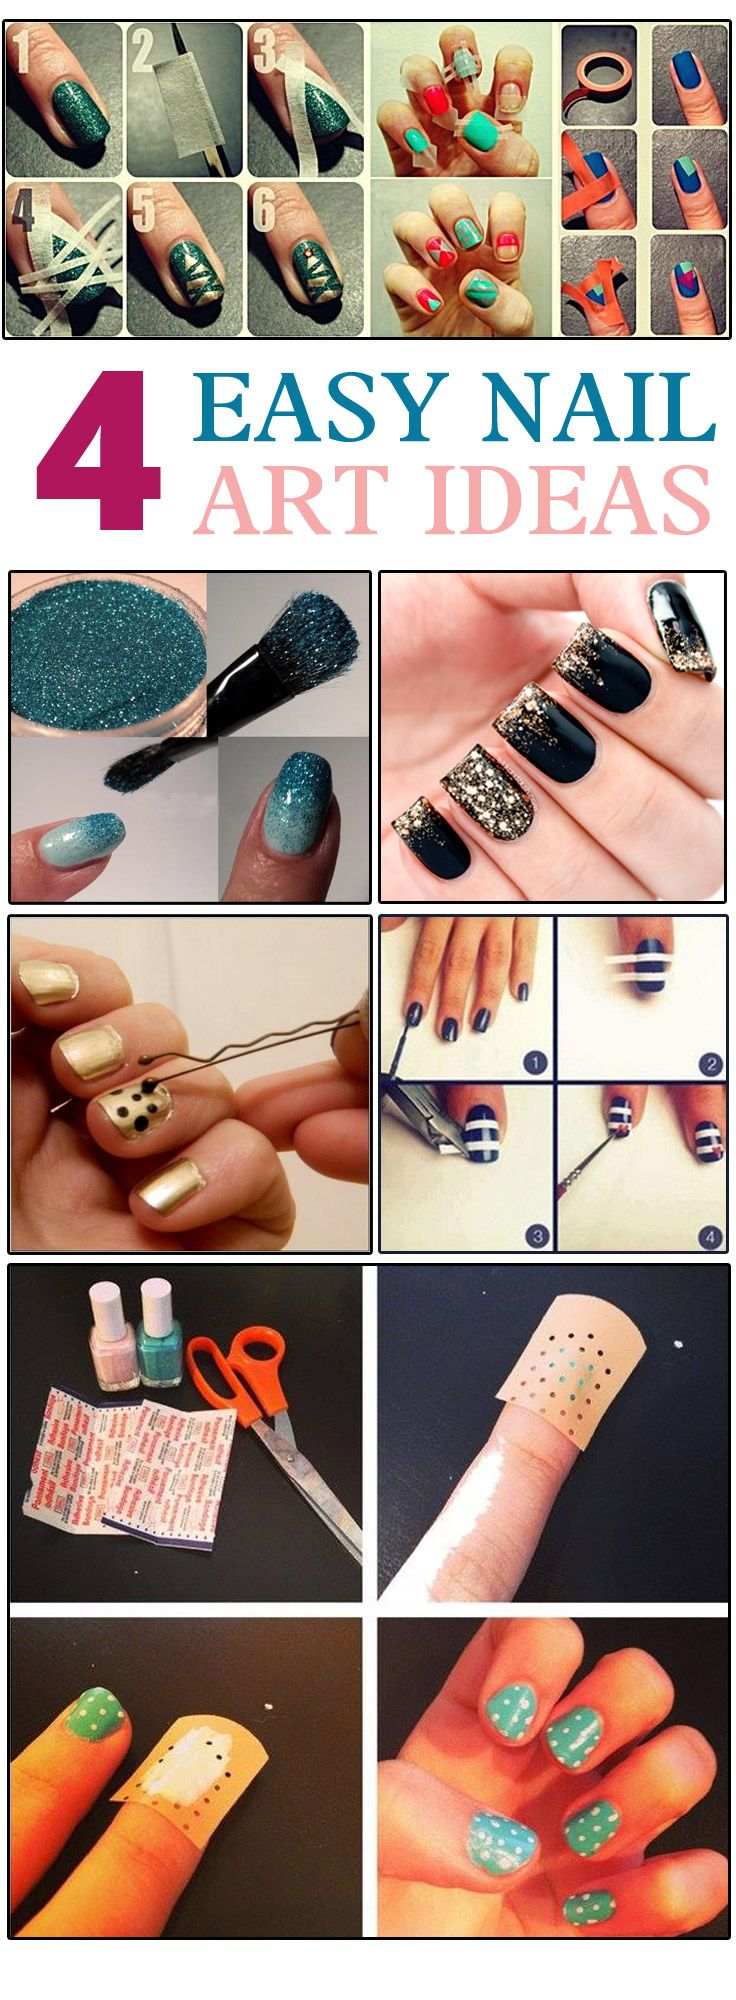 If you think nail art is hard work, then we've just erased the myth. Here are simple nail art tips that'll transform your nails beautifully. If you are wondering, why should you do nail art,then you must know that it has become as important as applying a lipstick. Nails have become the major trendsetting accessory. It is the most important part of the overall look. Your favourite celebrities love to flaunt them & fashion designers consider it important for models on the runway.